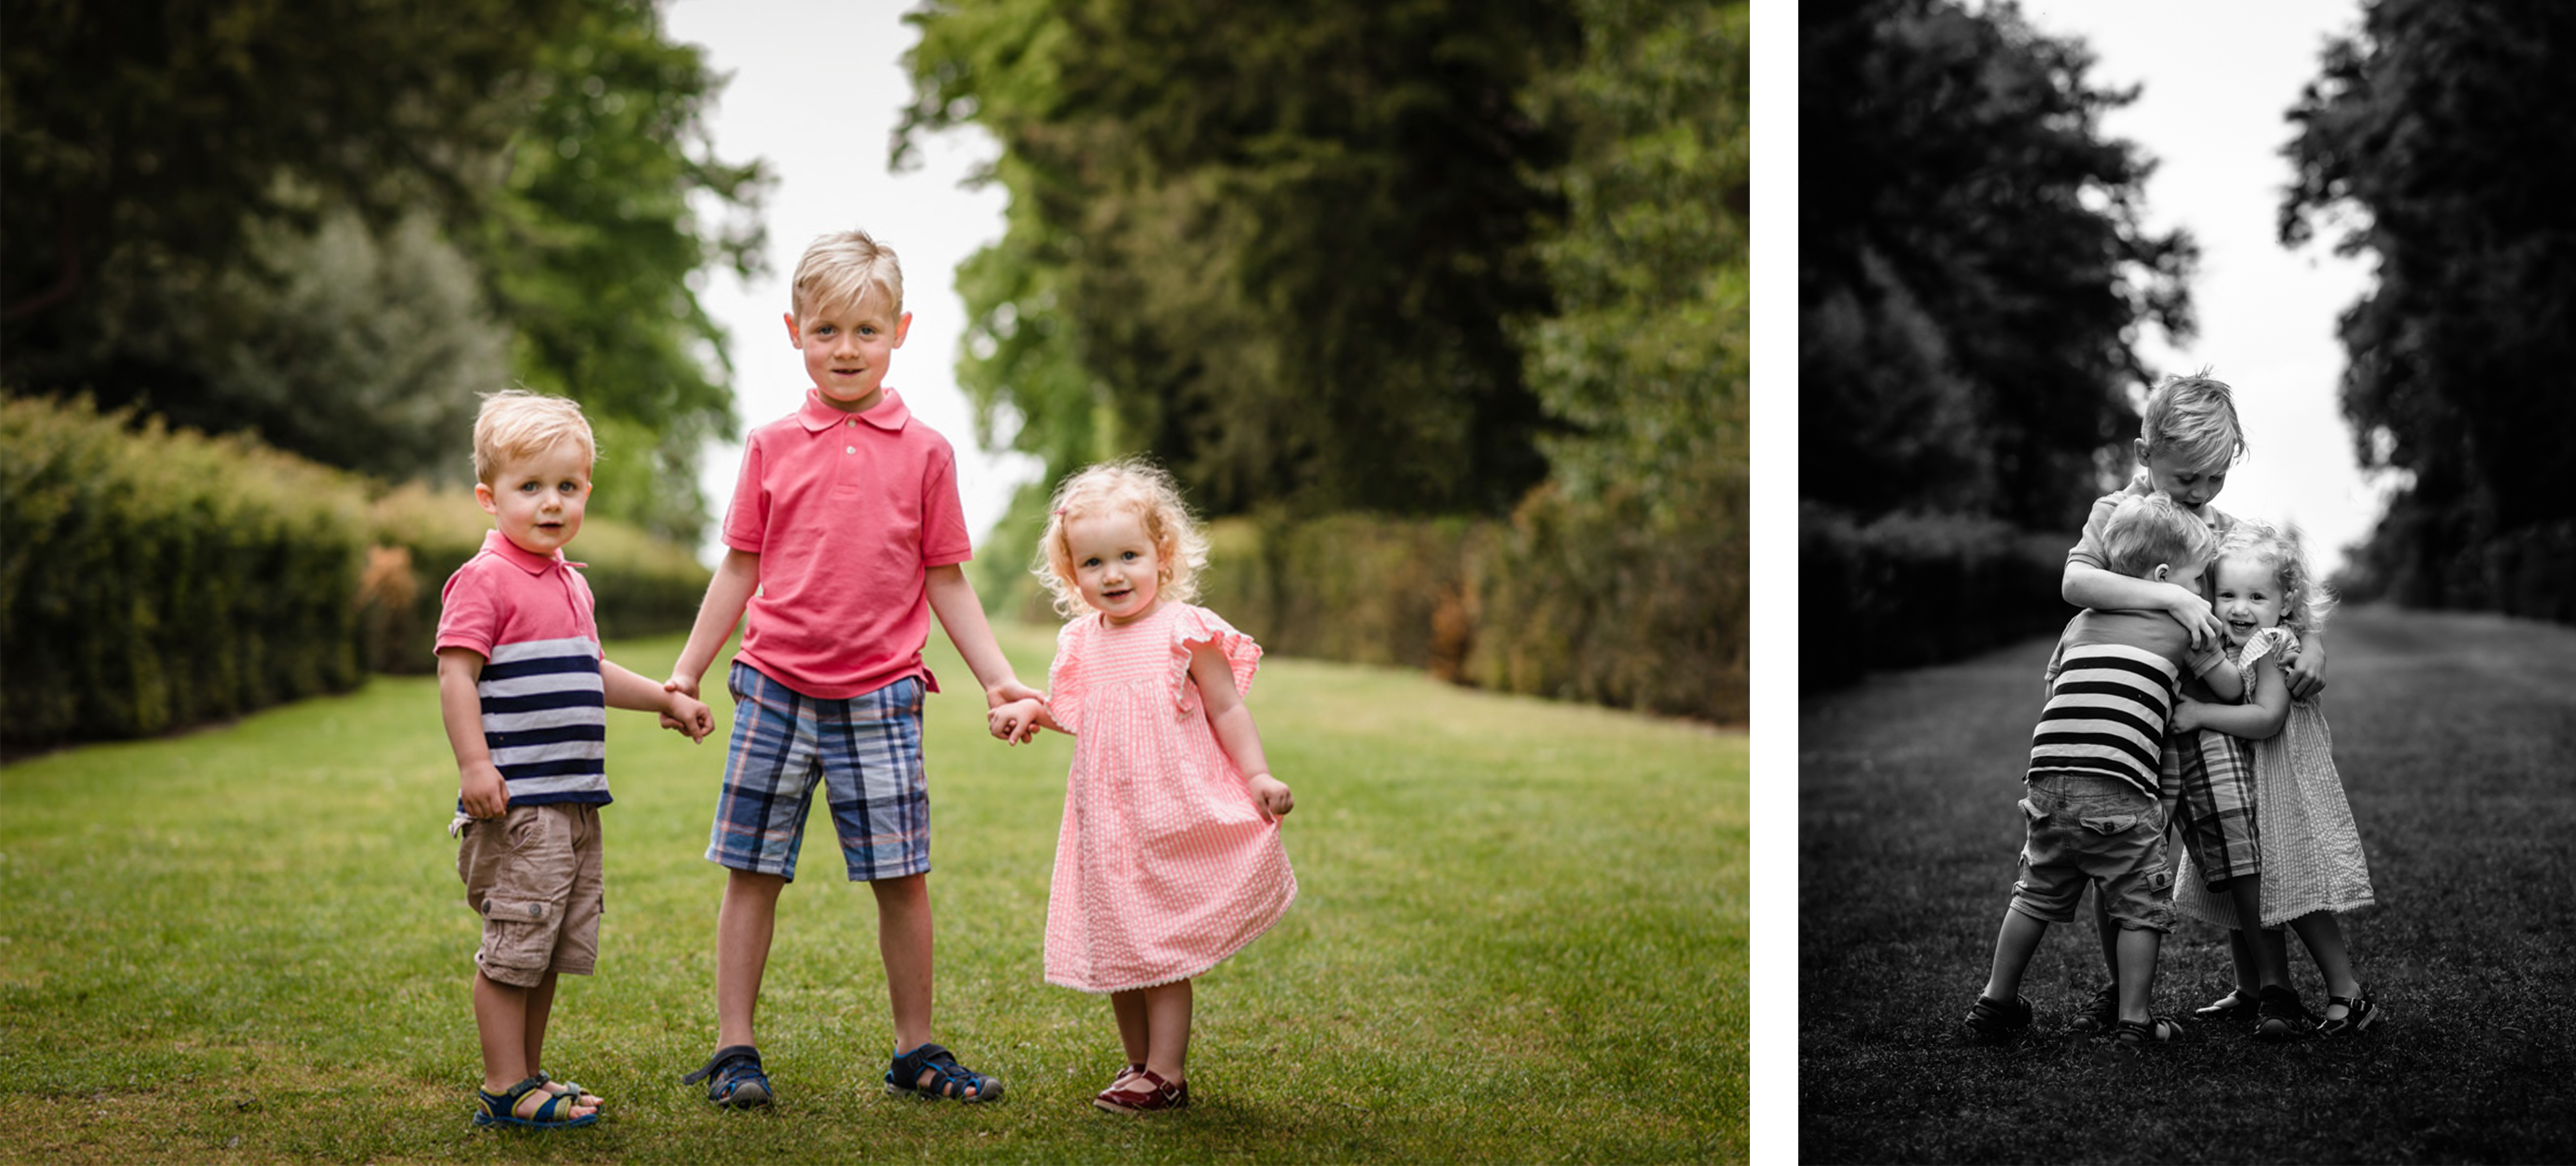 Amersham Buckinghamshire Hazelmere High Wycombe Beaconsfield Gerards Cross family fine art children photographer